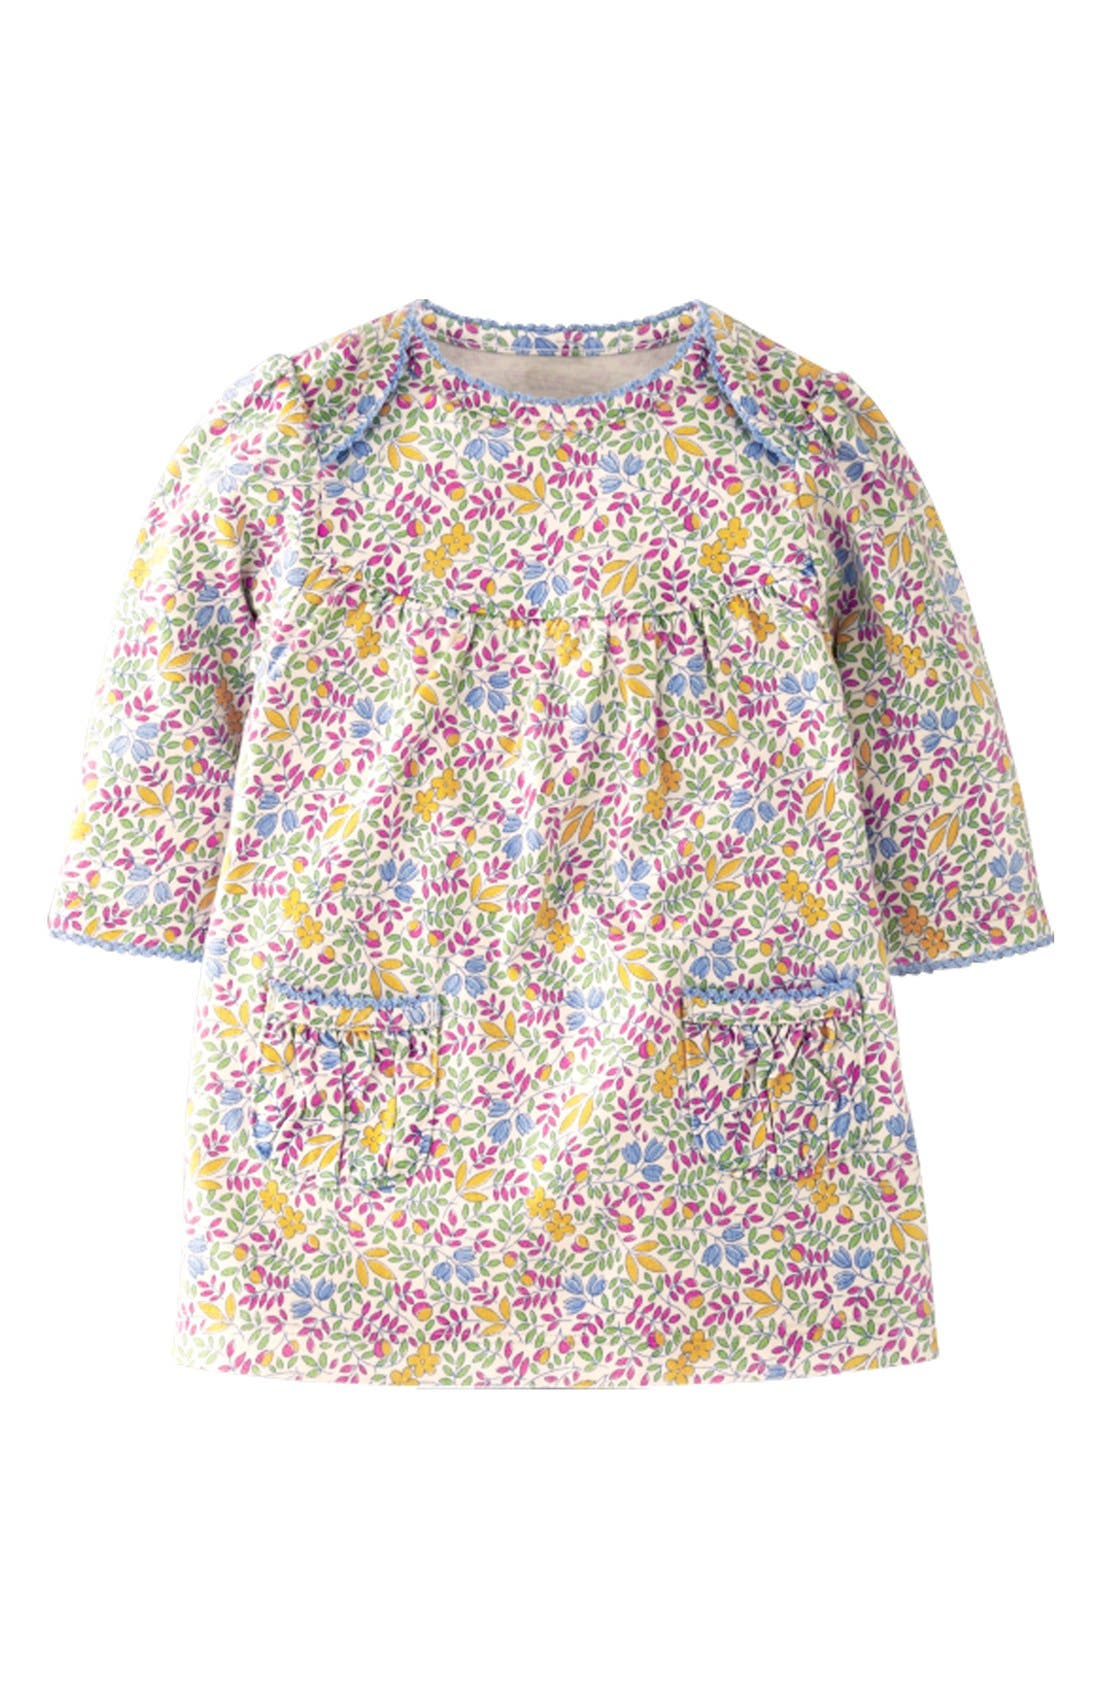 Alternate Image 1 Selected - Mini Boden Dress & Tights (Baby Girls)